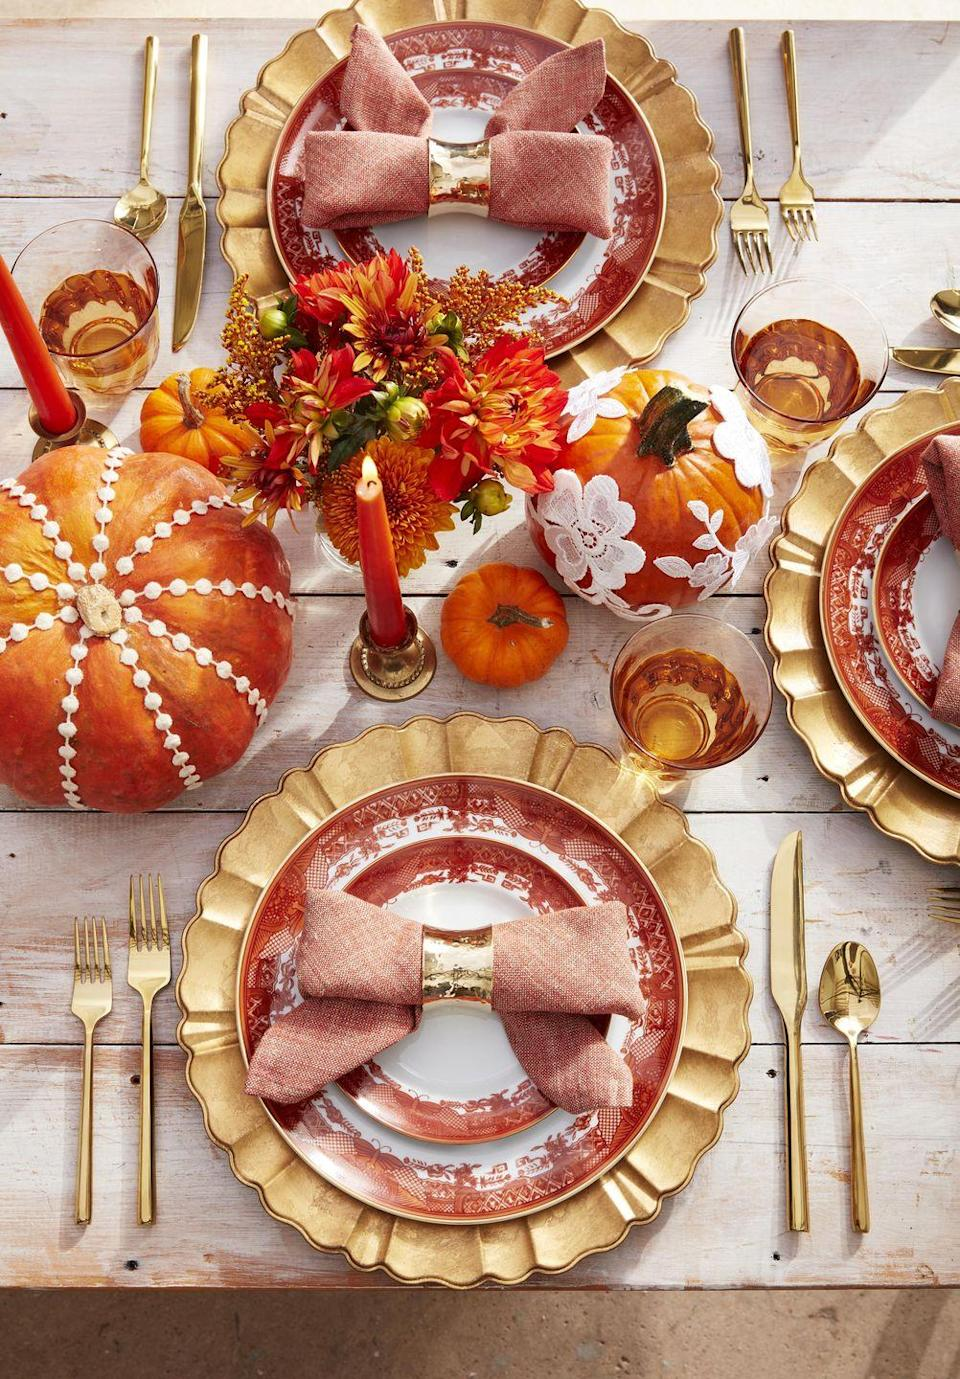 <p>Not just for wedding dresses! Hot glue lace and sewing trim on orange pumpkins and sprinkle them down the center of the table. Orange flower and bittersweet add a soft touch. Bonus: Form napkins into a bow shape and slip a gold napkin ring over the center. </p>